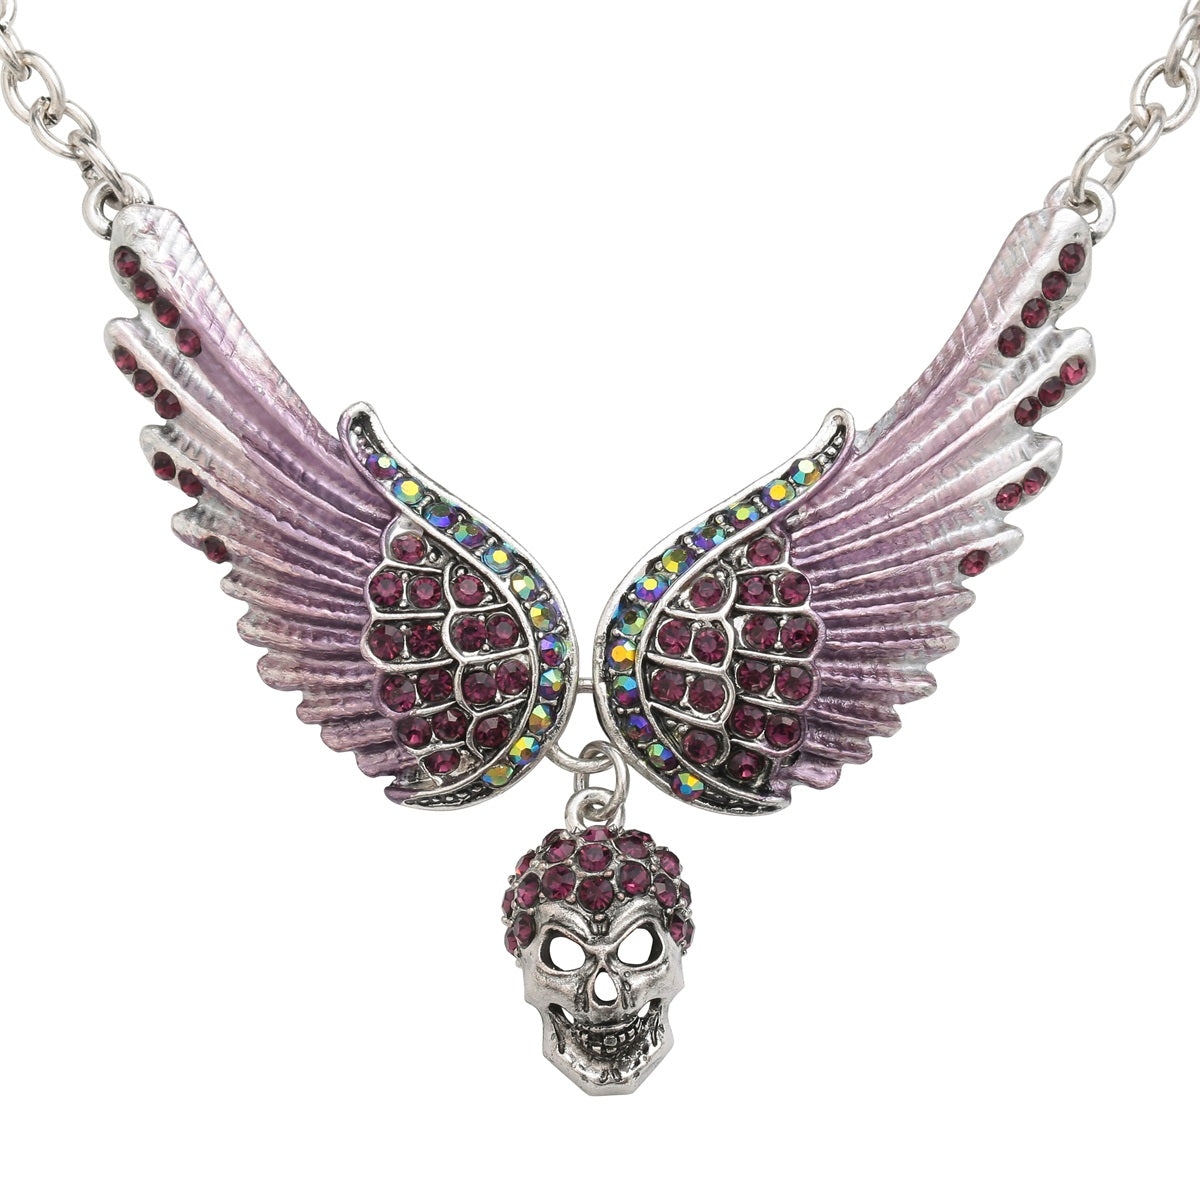 Angel Wings Skull Choker Necklace - 30% Off! - The Creative Booth